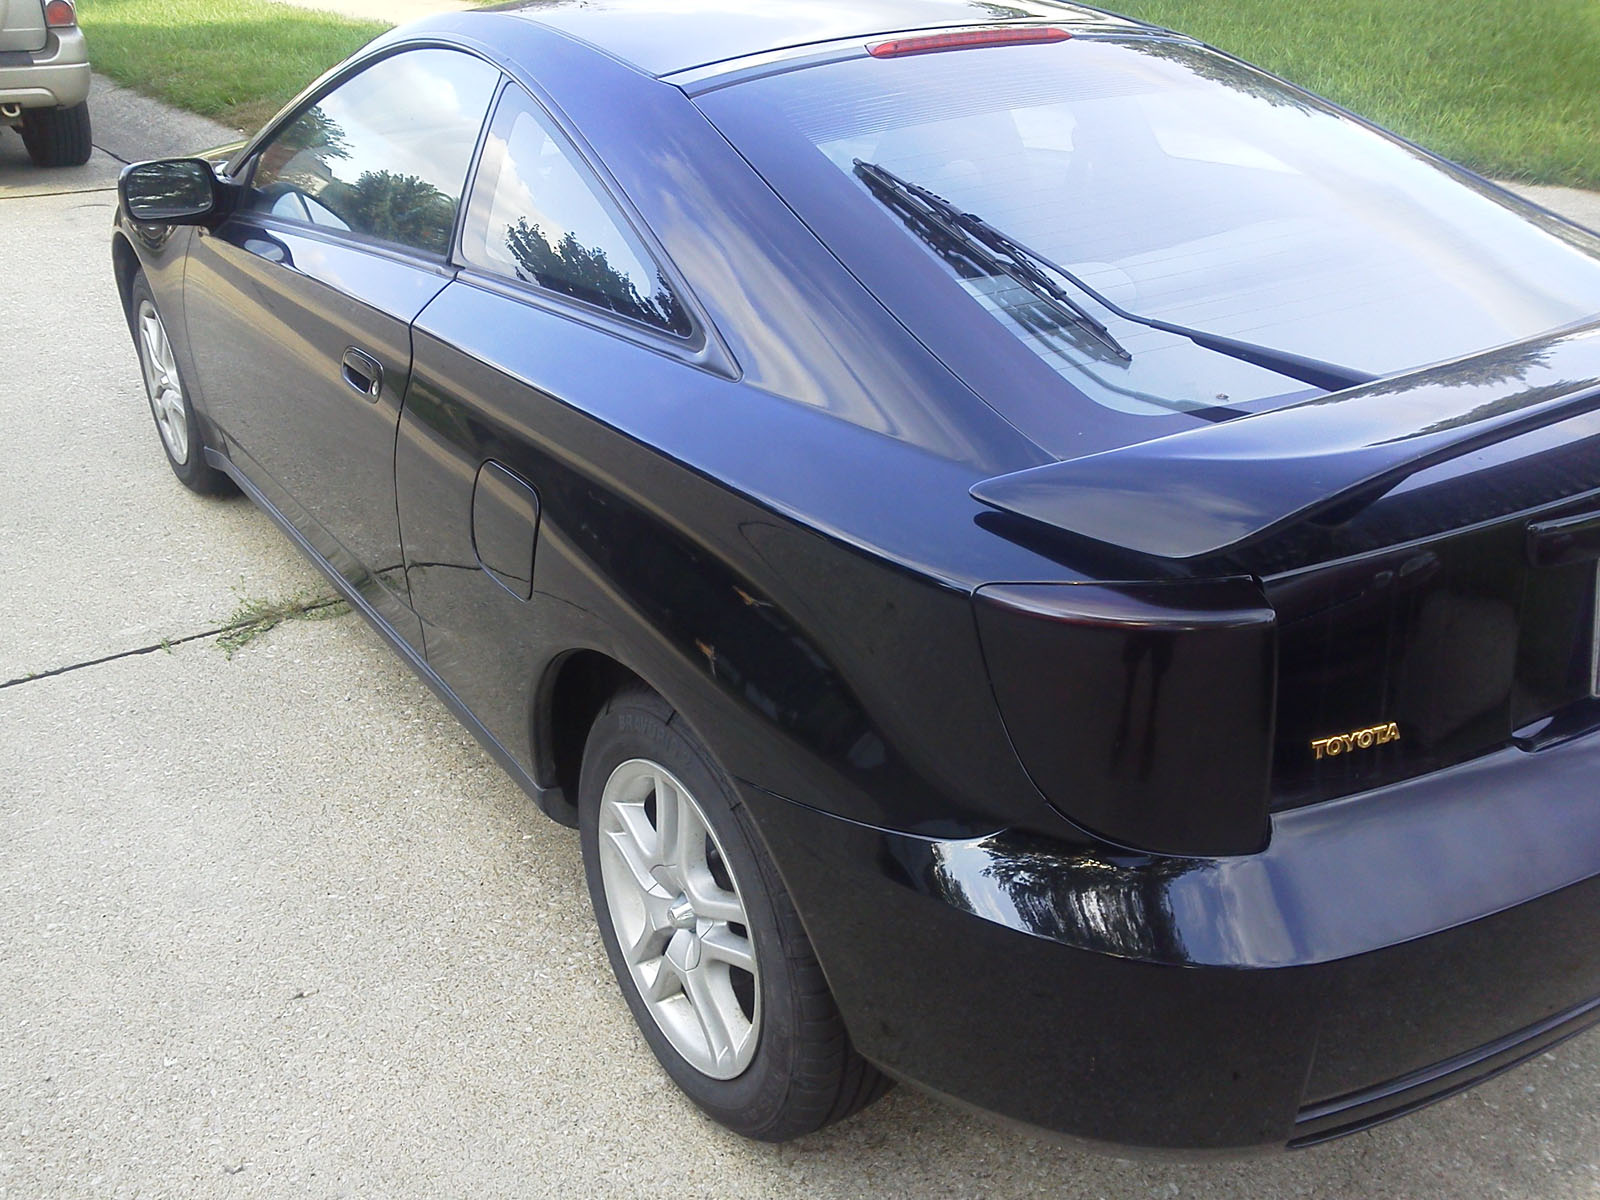 2000 toyota celica gt for sale canal winchester ohio. Black Bedroom Furniture Sets. Home Design Ideas